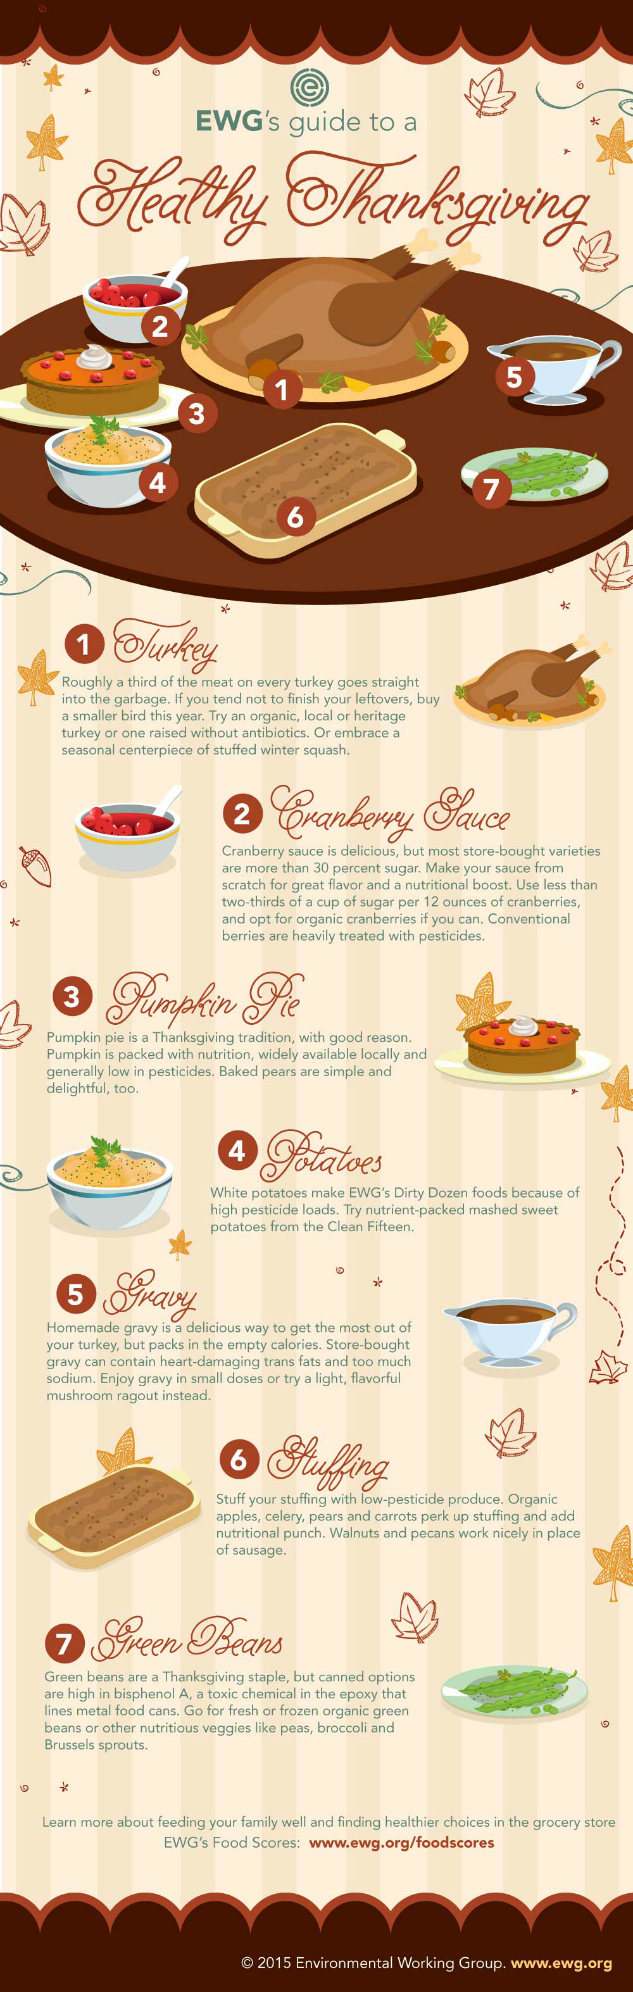 Eco-friendly guide to a healthy Thanksgiving meal | The Momiverse